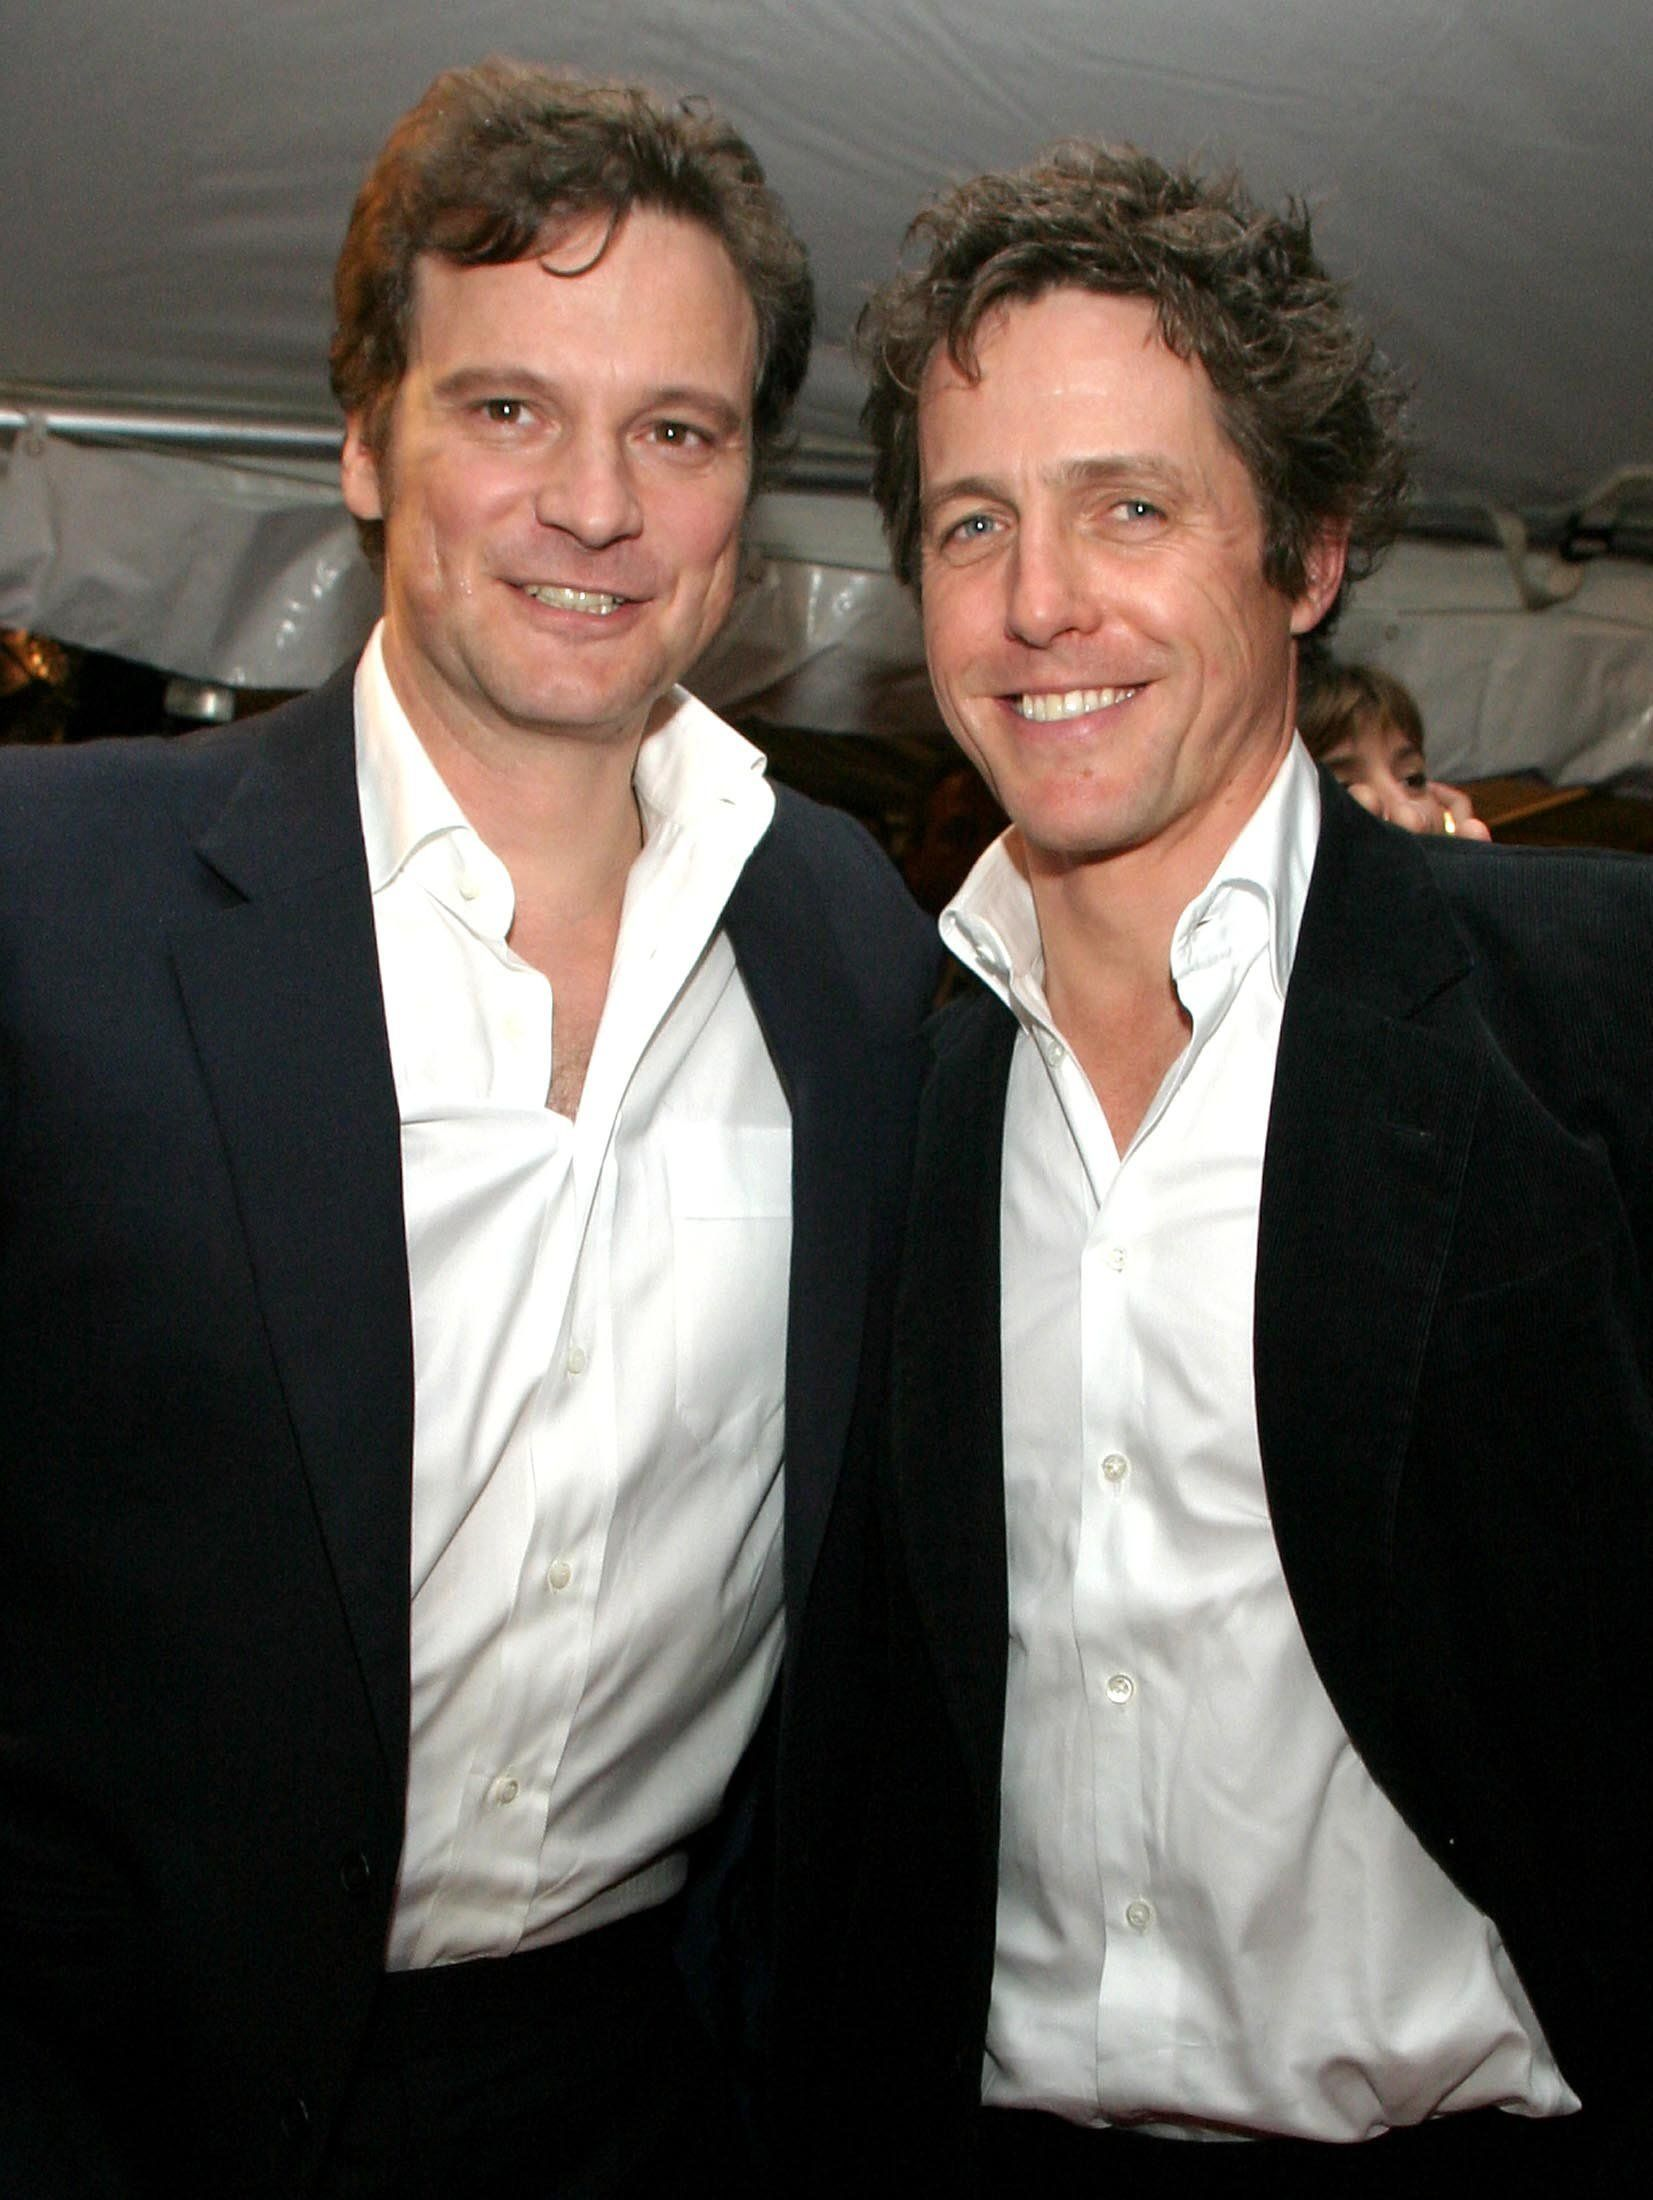 Colin Firth and Hugh Grant, seen here in 2003, are getting ready for a reunion.